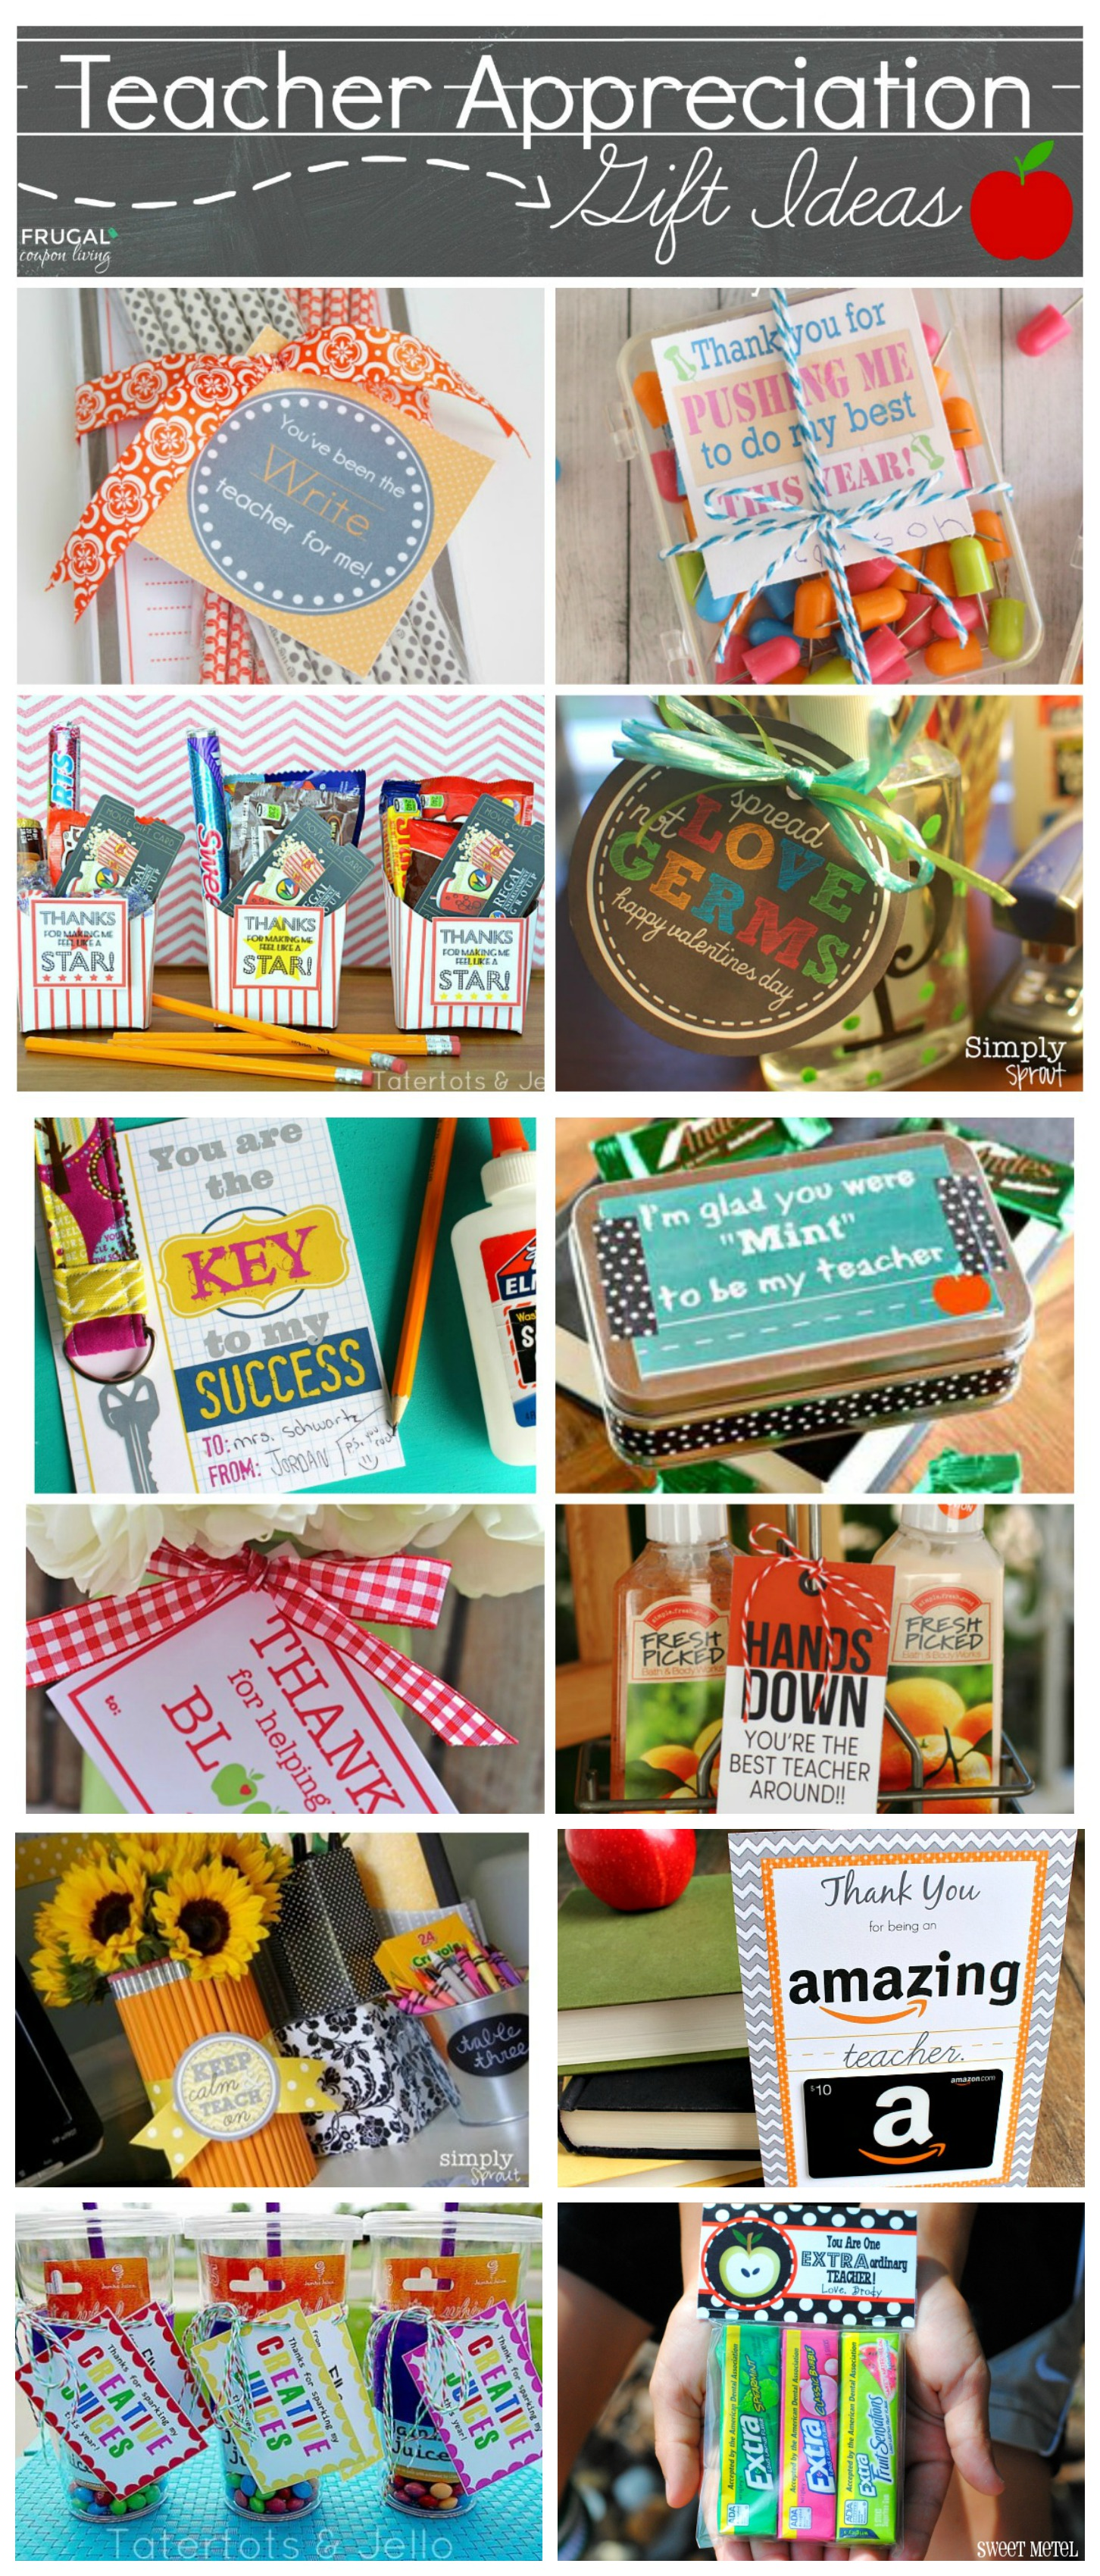 pinterest-teacher-appreciation-gift-ideas-Collage-frugal-coupon-ilving